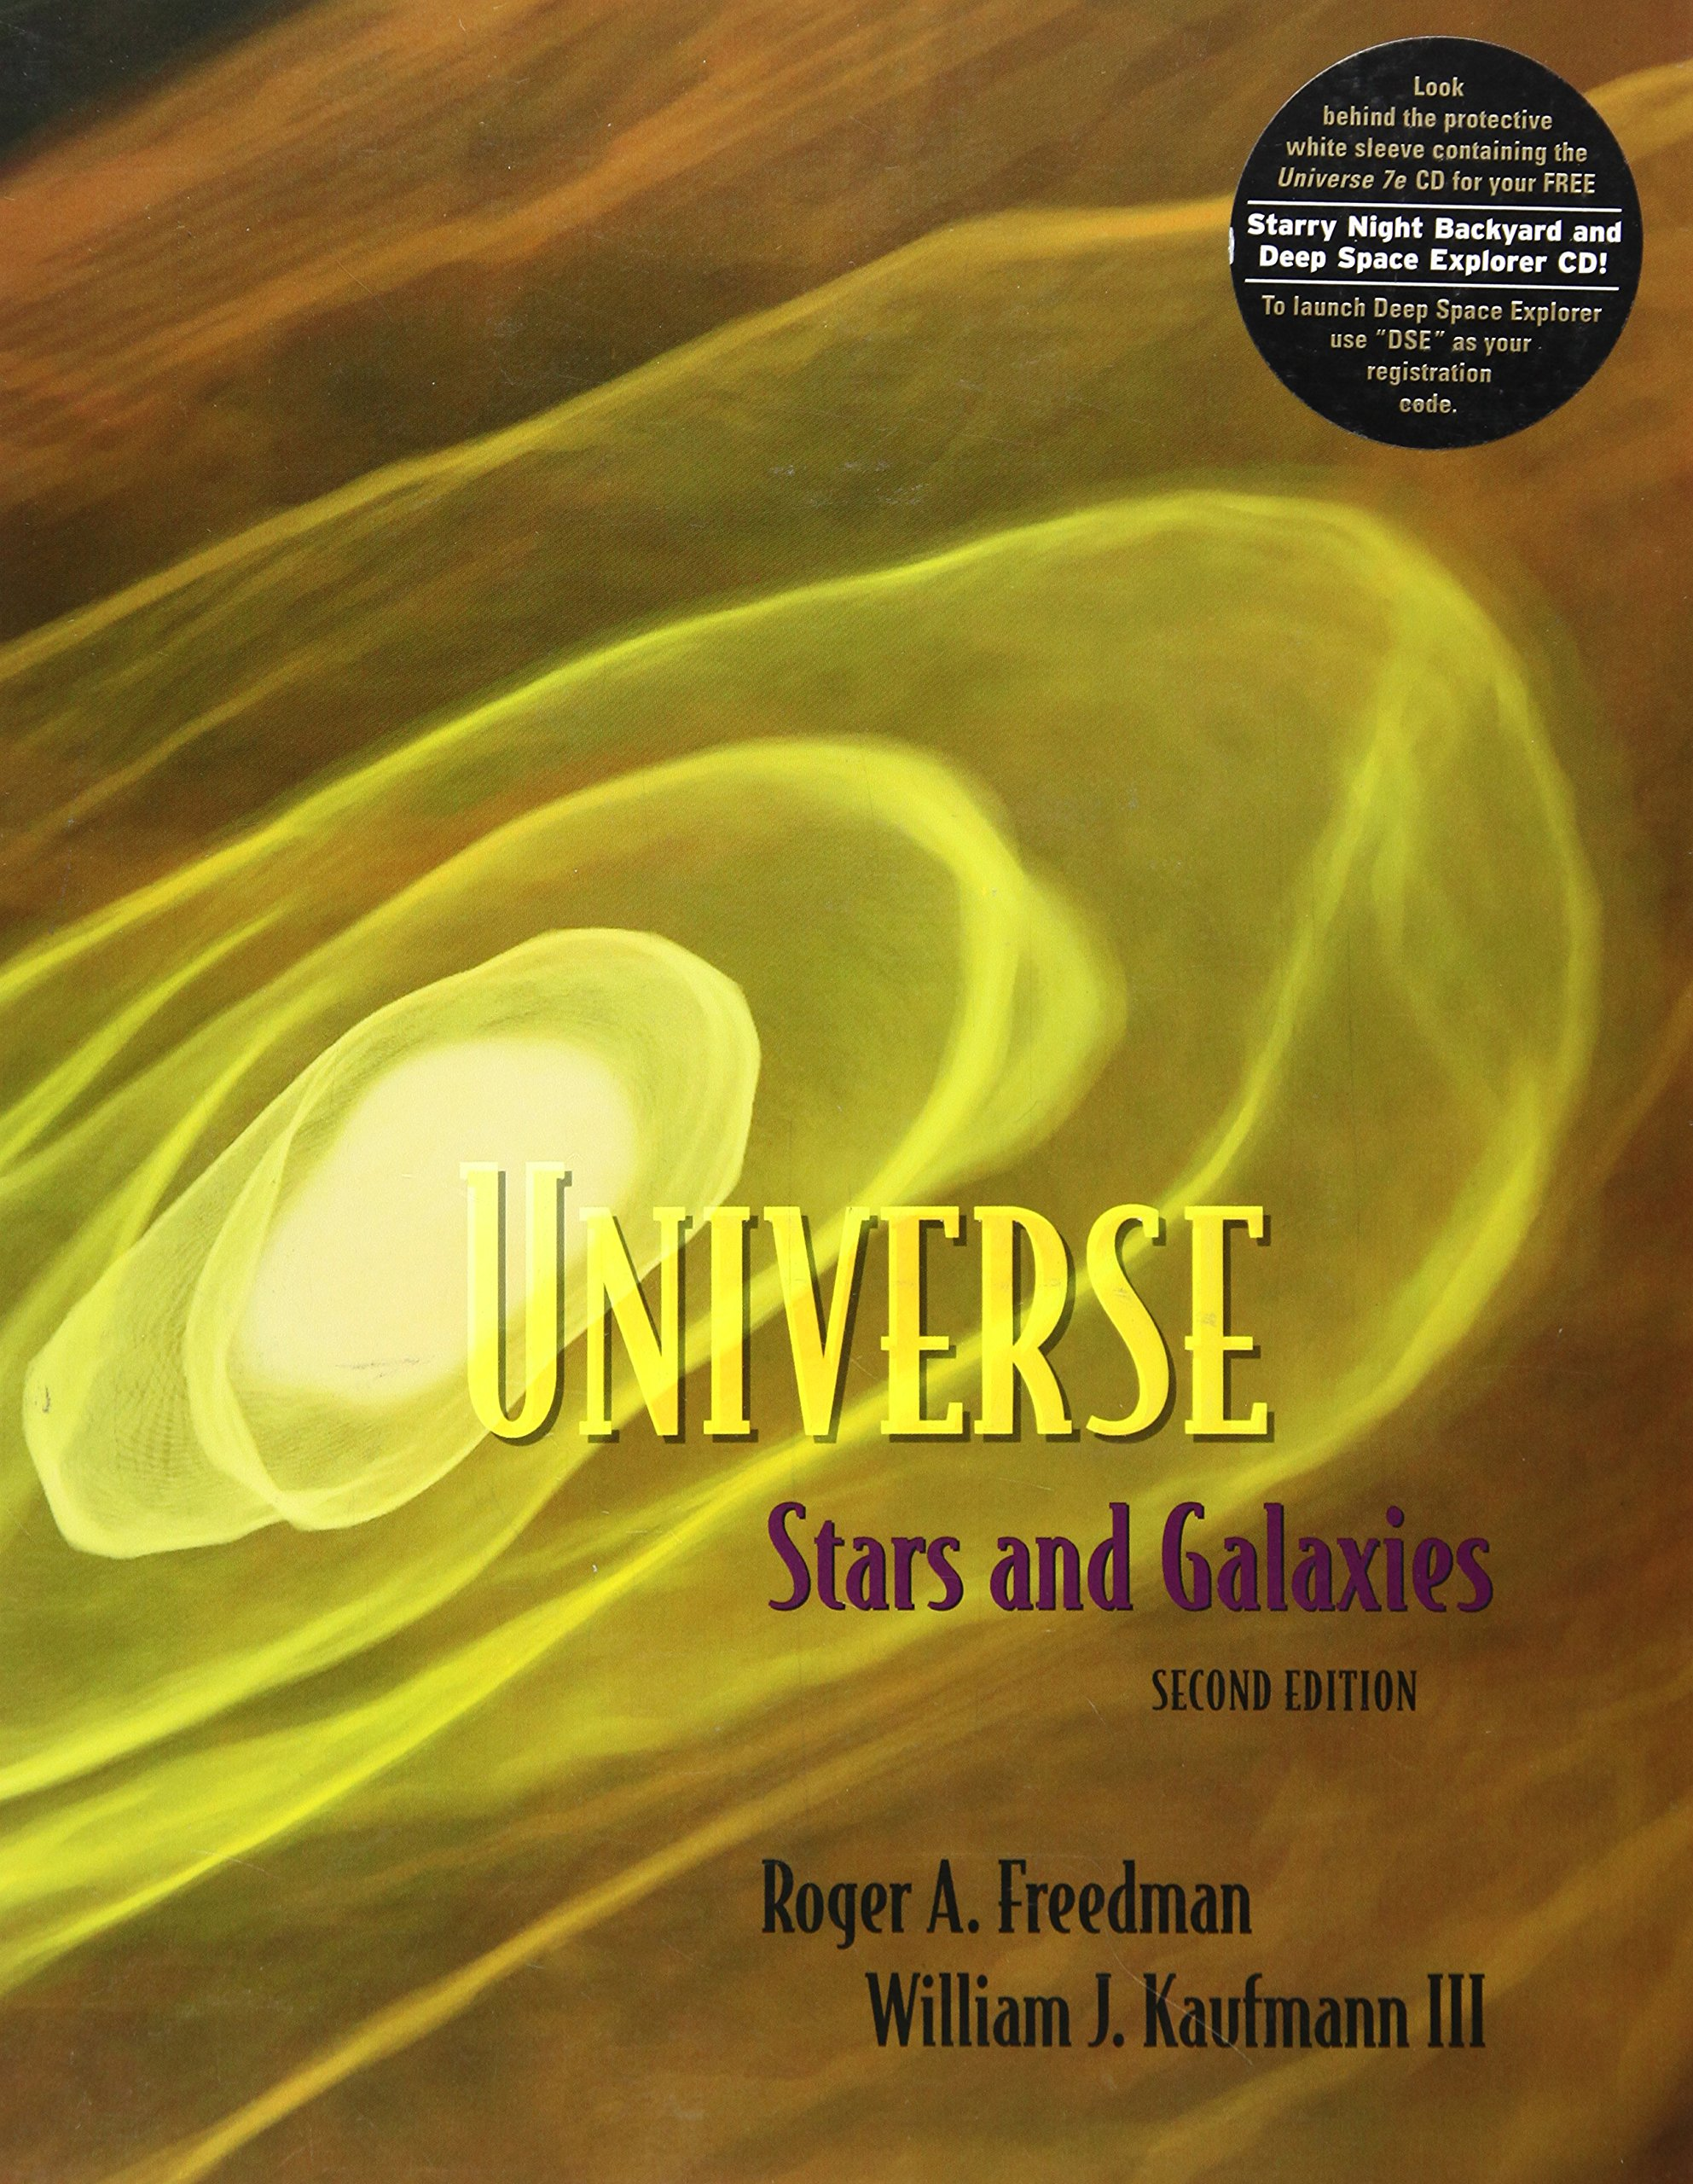 universe stars and galaxies plus snb v4 0 amazon co uk william